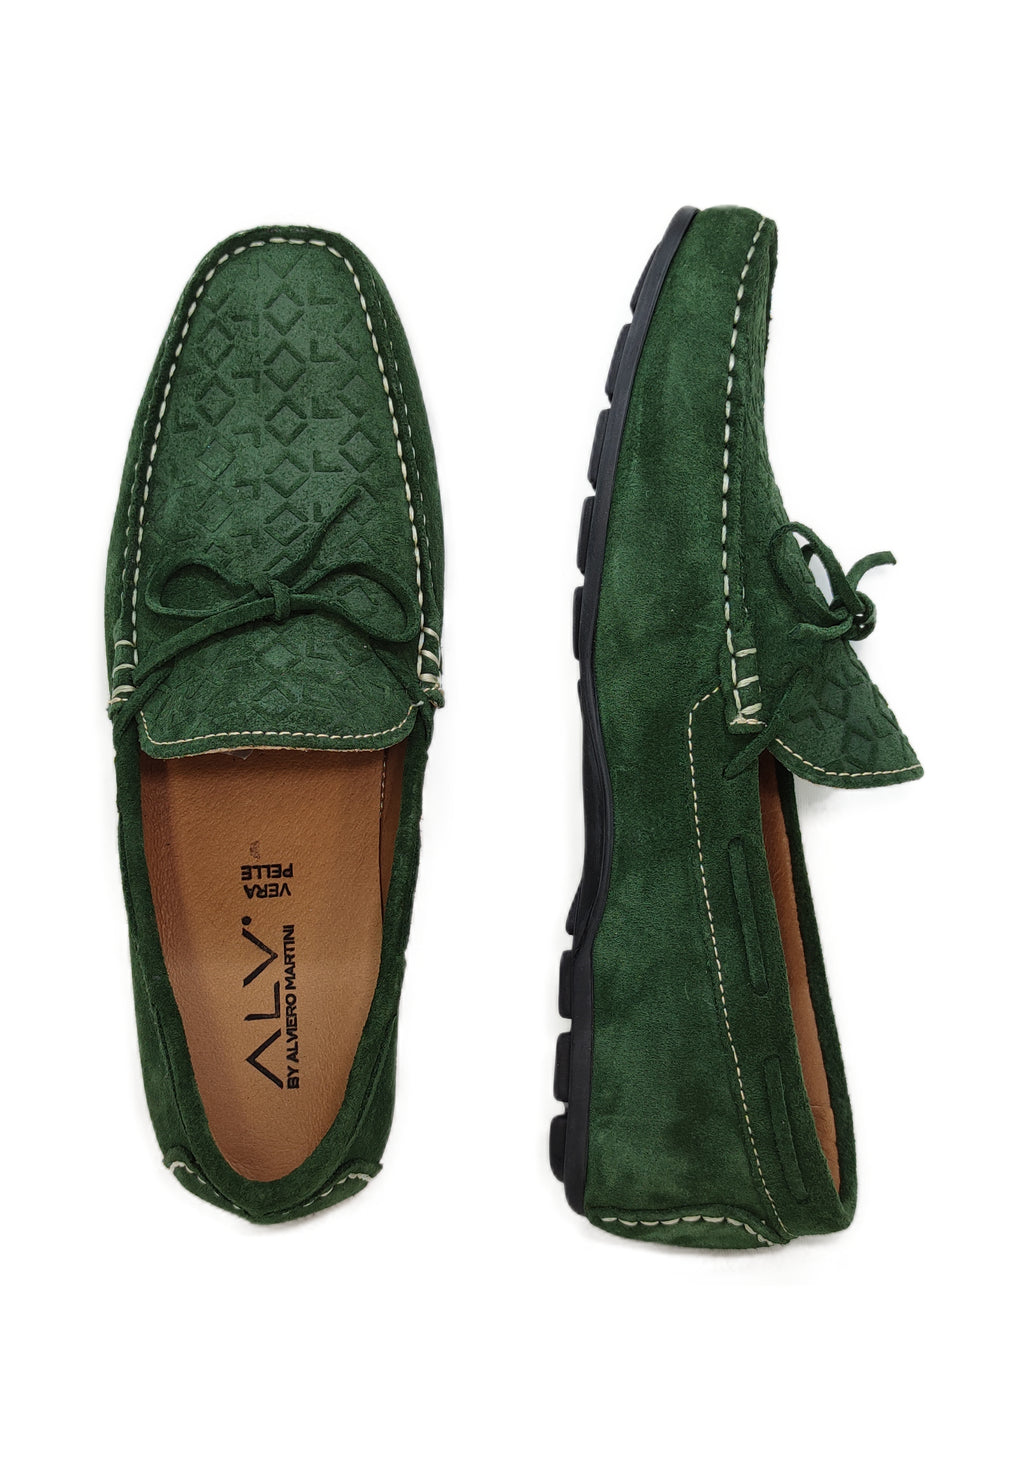 ALV205 GREEN - Mocassino uomo